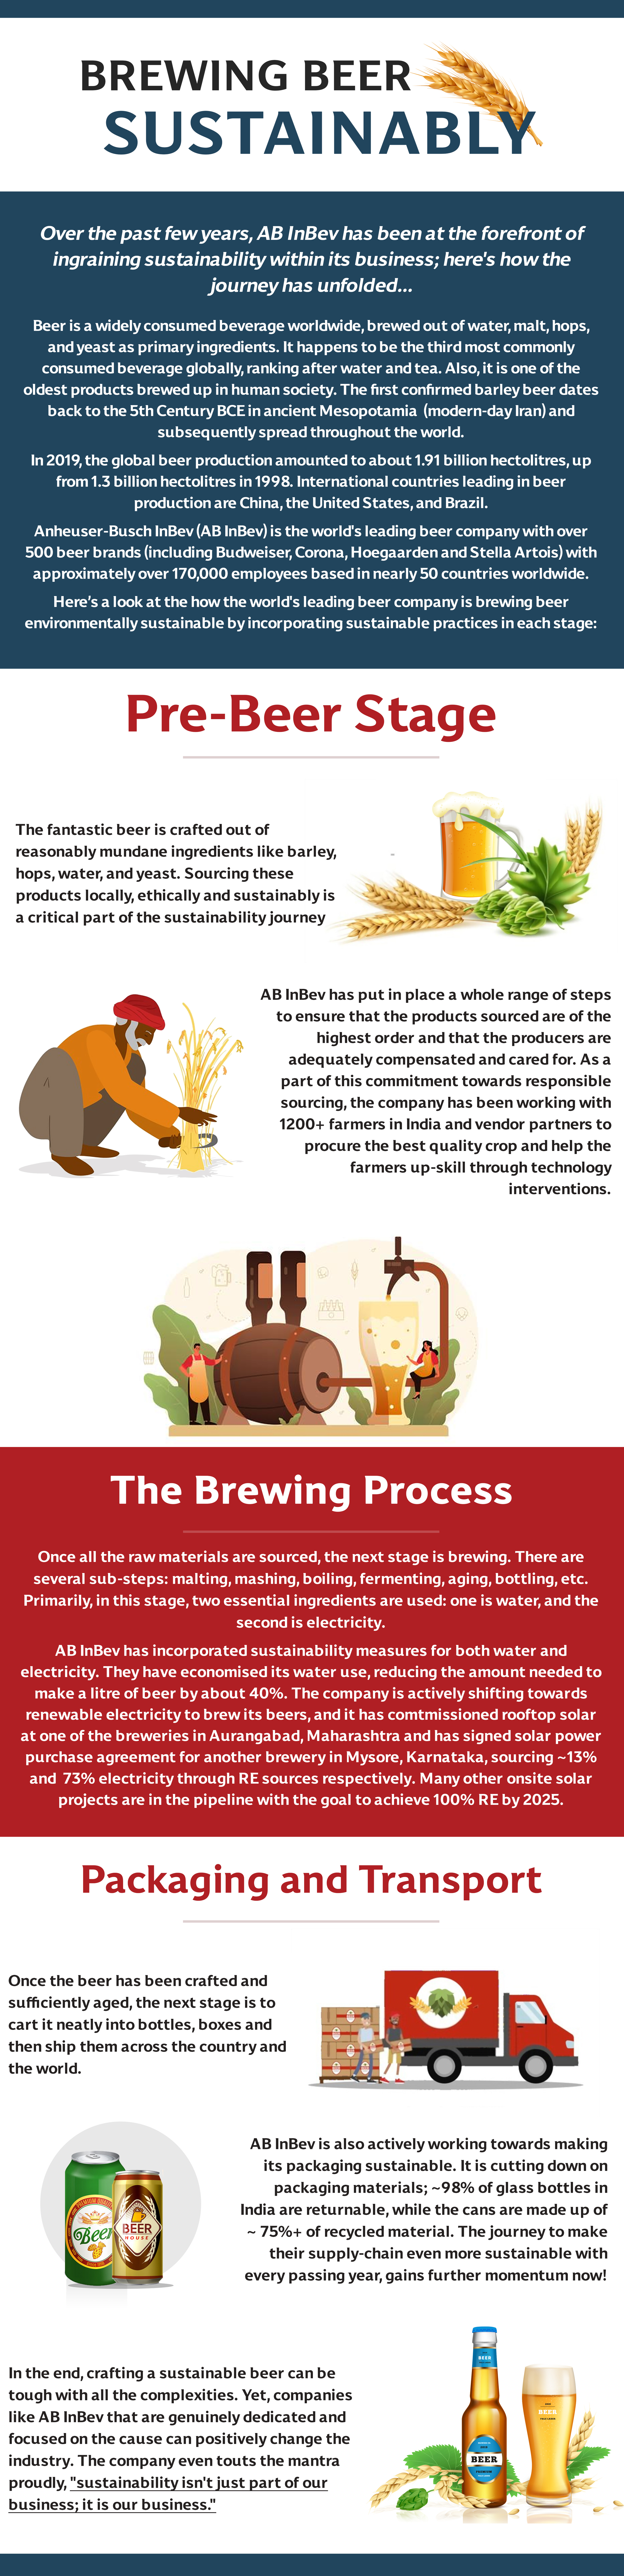 Infographic - How worlds leading brewer is ensuring sustainable practices at every step of making beer - FINAL